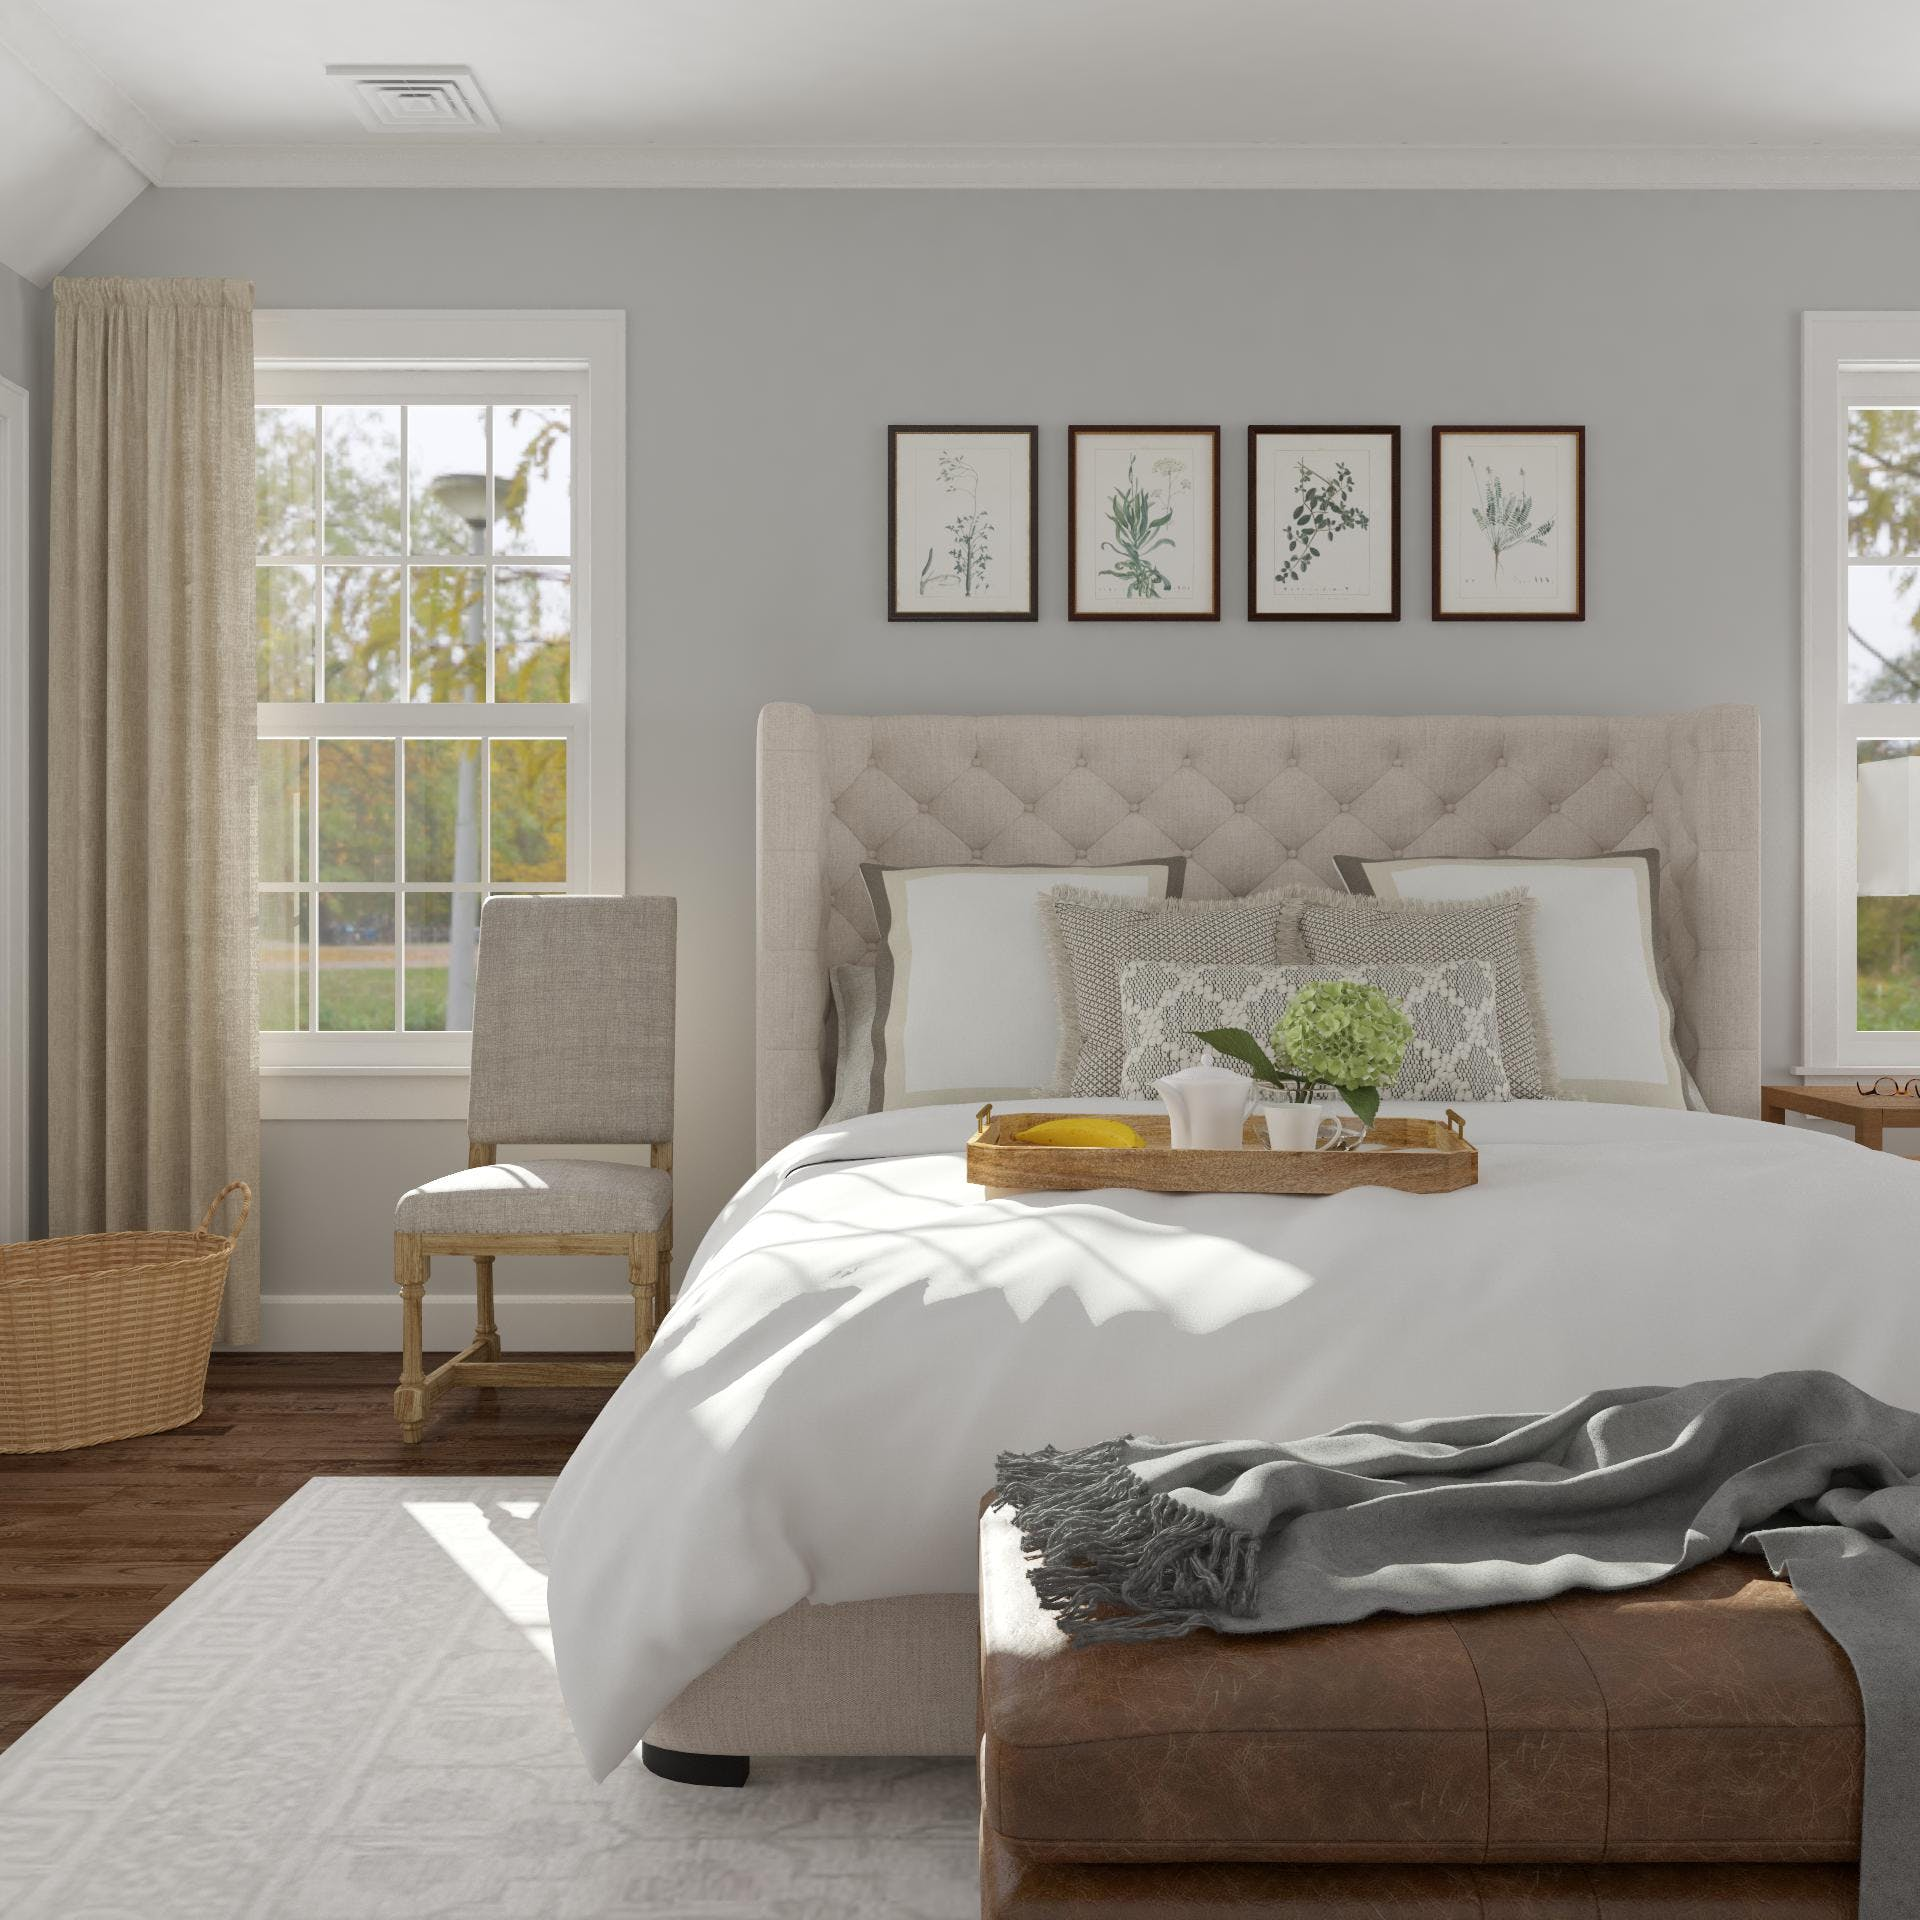 Tranquil Traditional Bedroom with Layers of Cozy Comfort